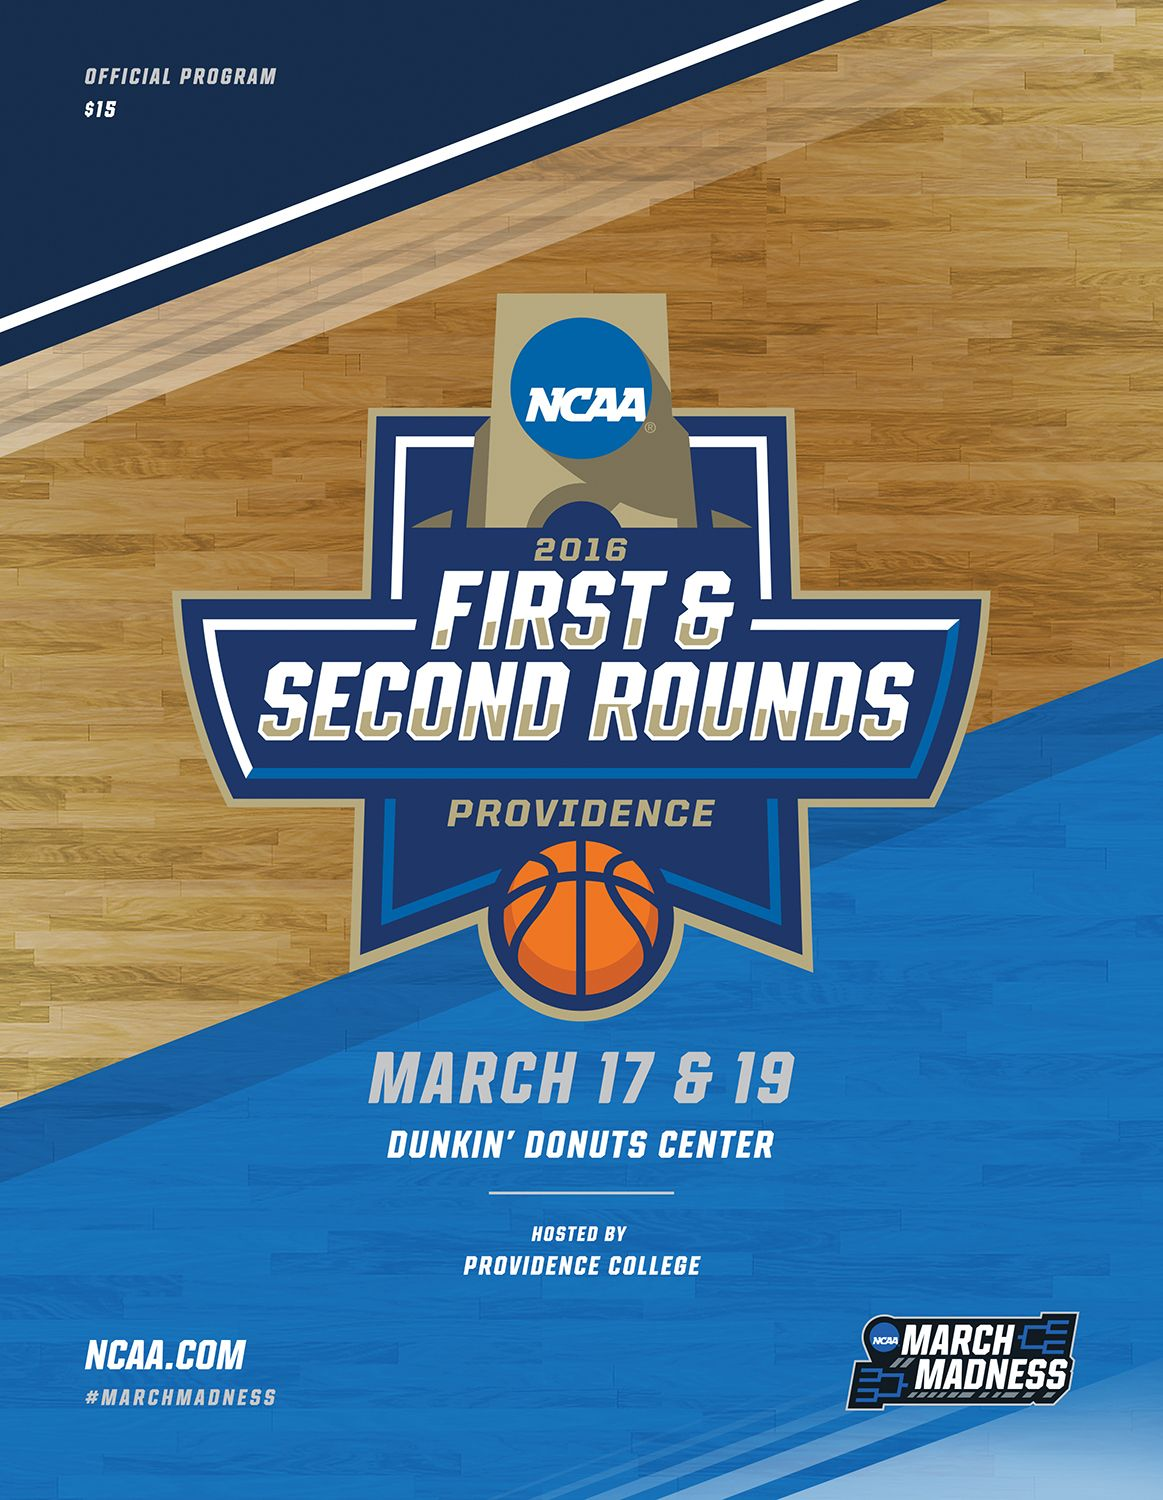 2016 Ncaa Di Men S Basketball 1st 2nd Round Providence Early Rounds Program Which Includes The Following Teams A Ncaa March Madness University Of Dayton Ncaa